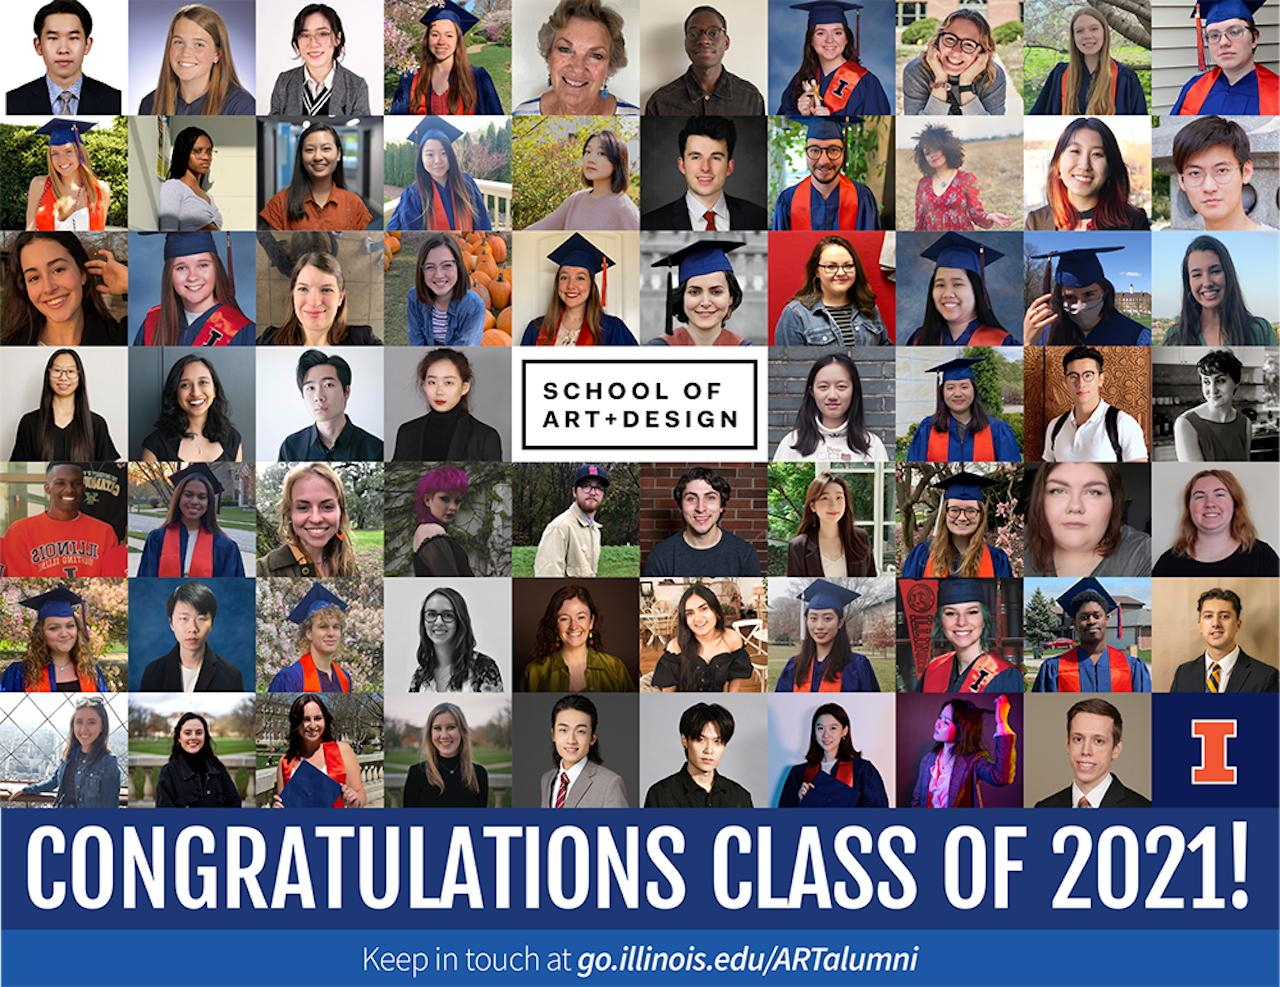 Congratulations card with tiled portraits of 70 graduates